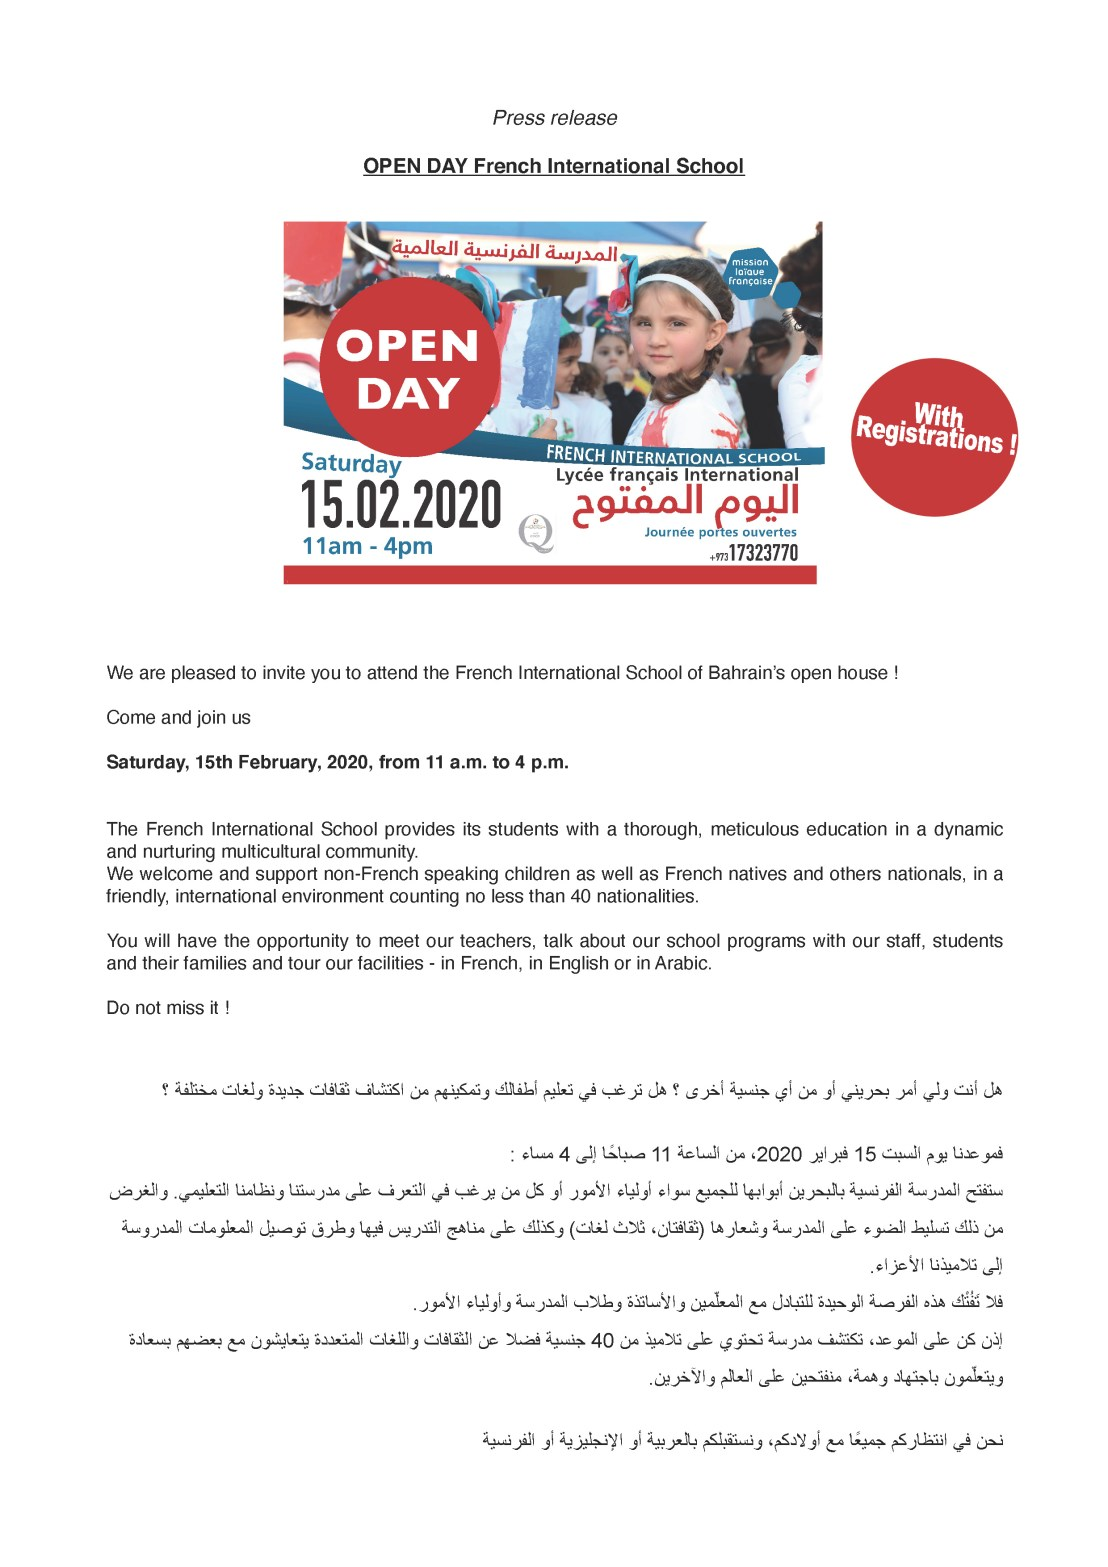 Press Relase Open day French International School ENGLISH ARABIC